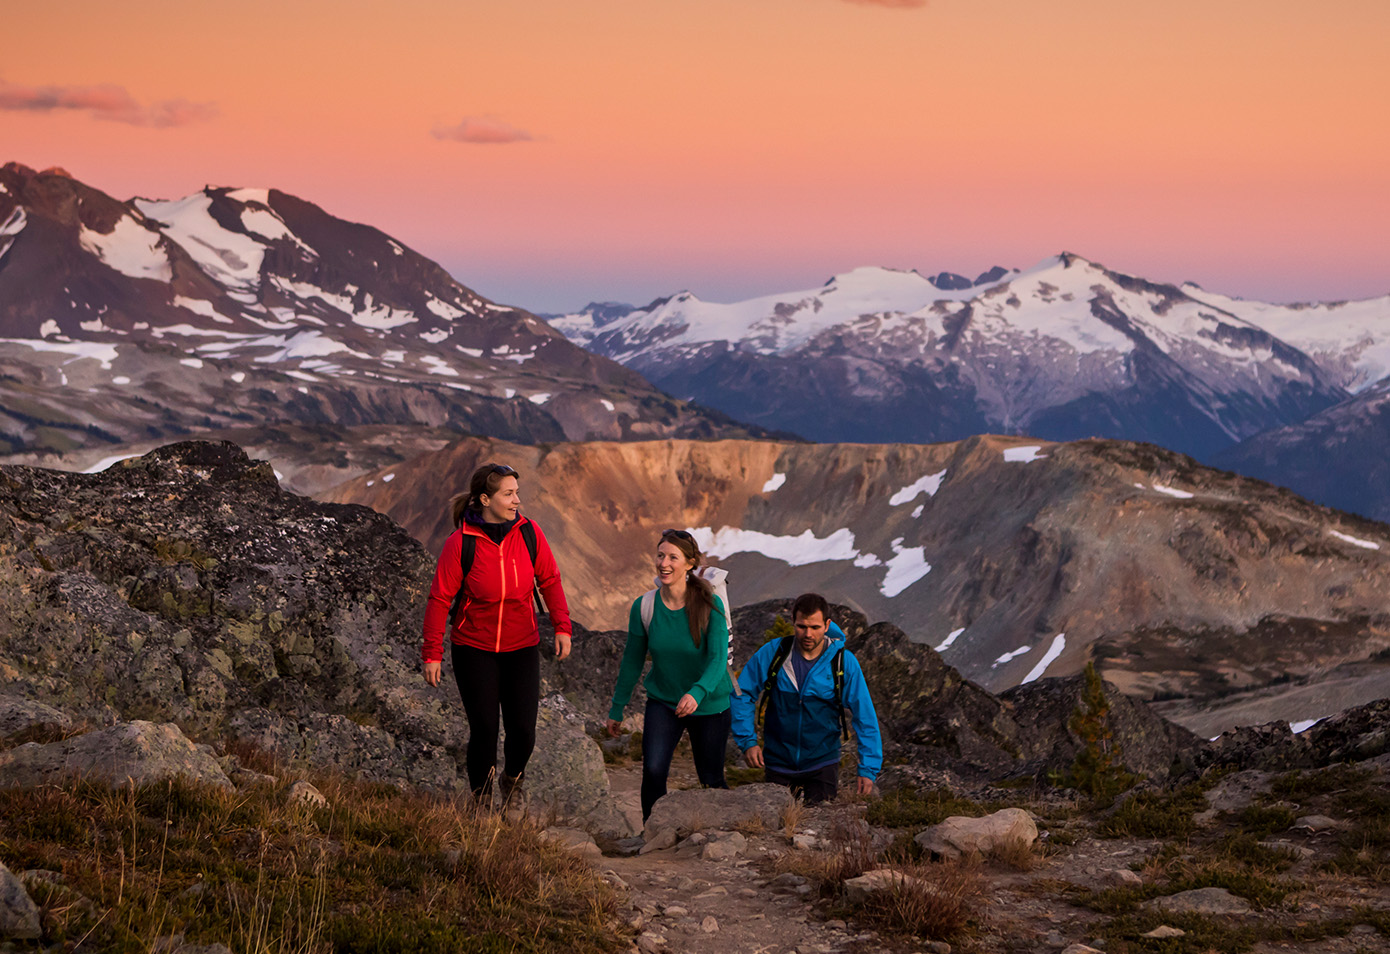 Hiking in Whistler's Alpine | Image: Tourism Whistler, Justa Jeskova